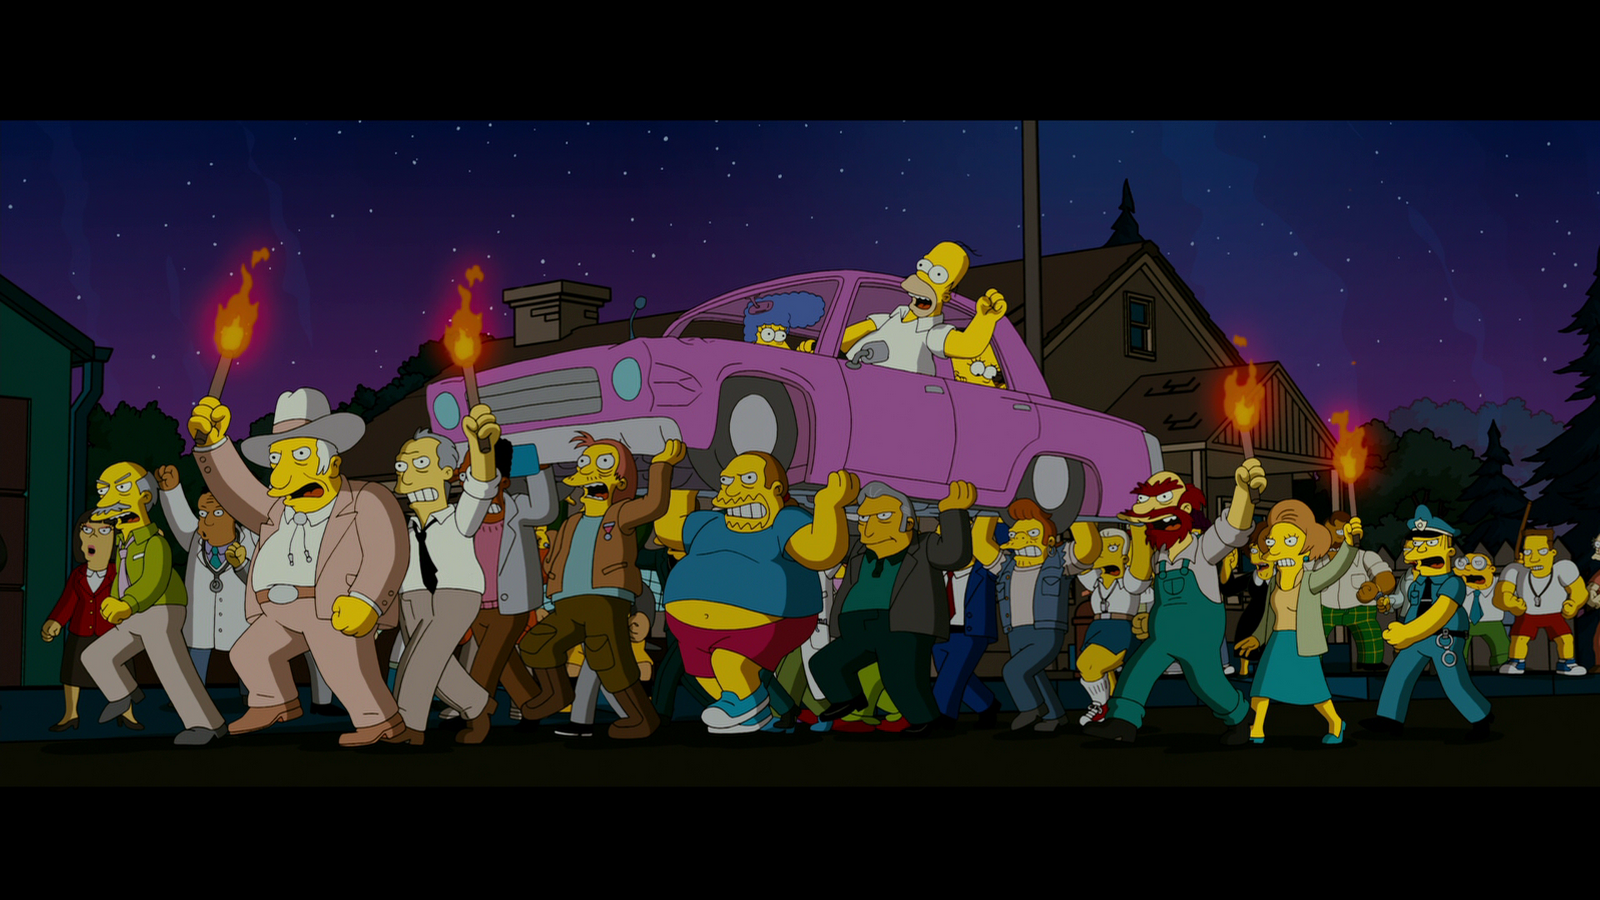 Watch full simpsons movie